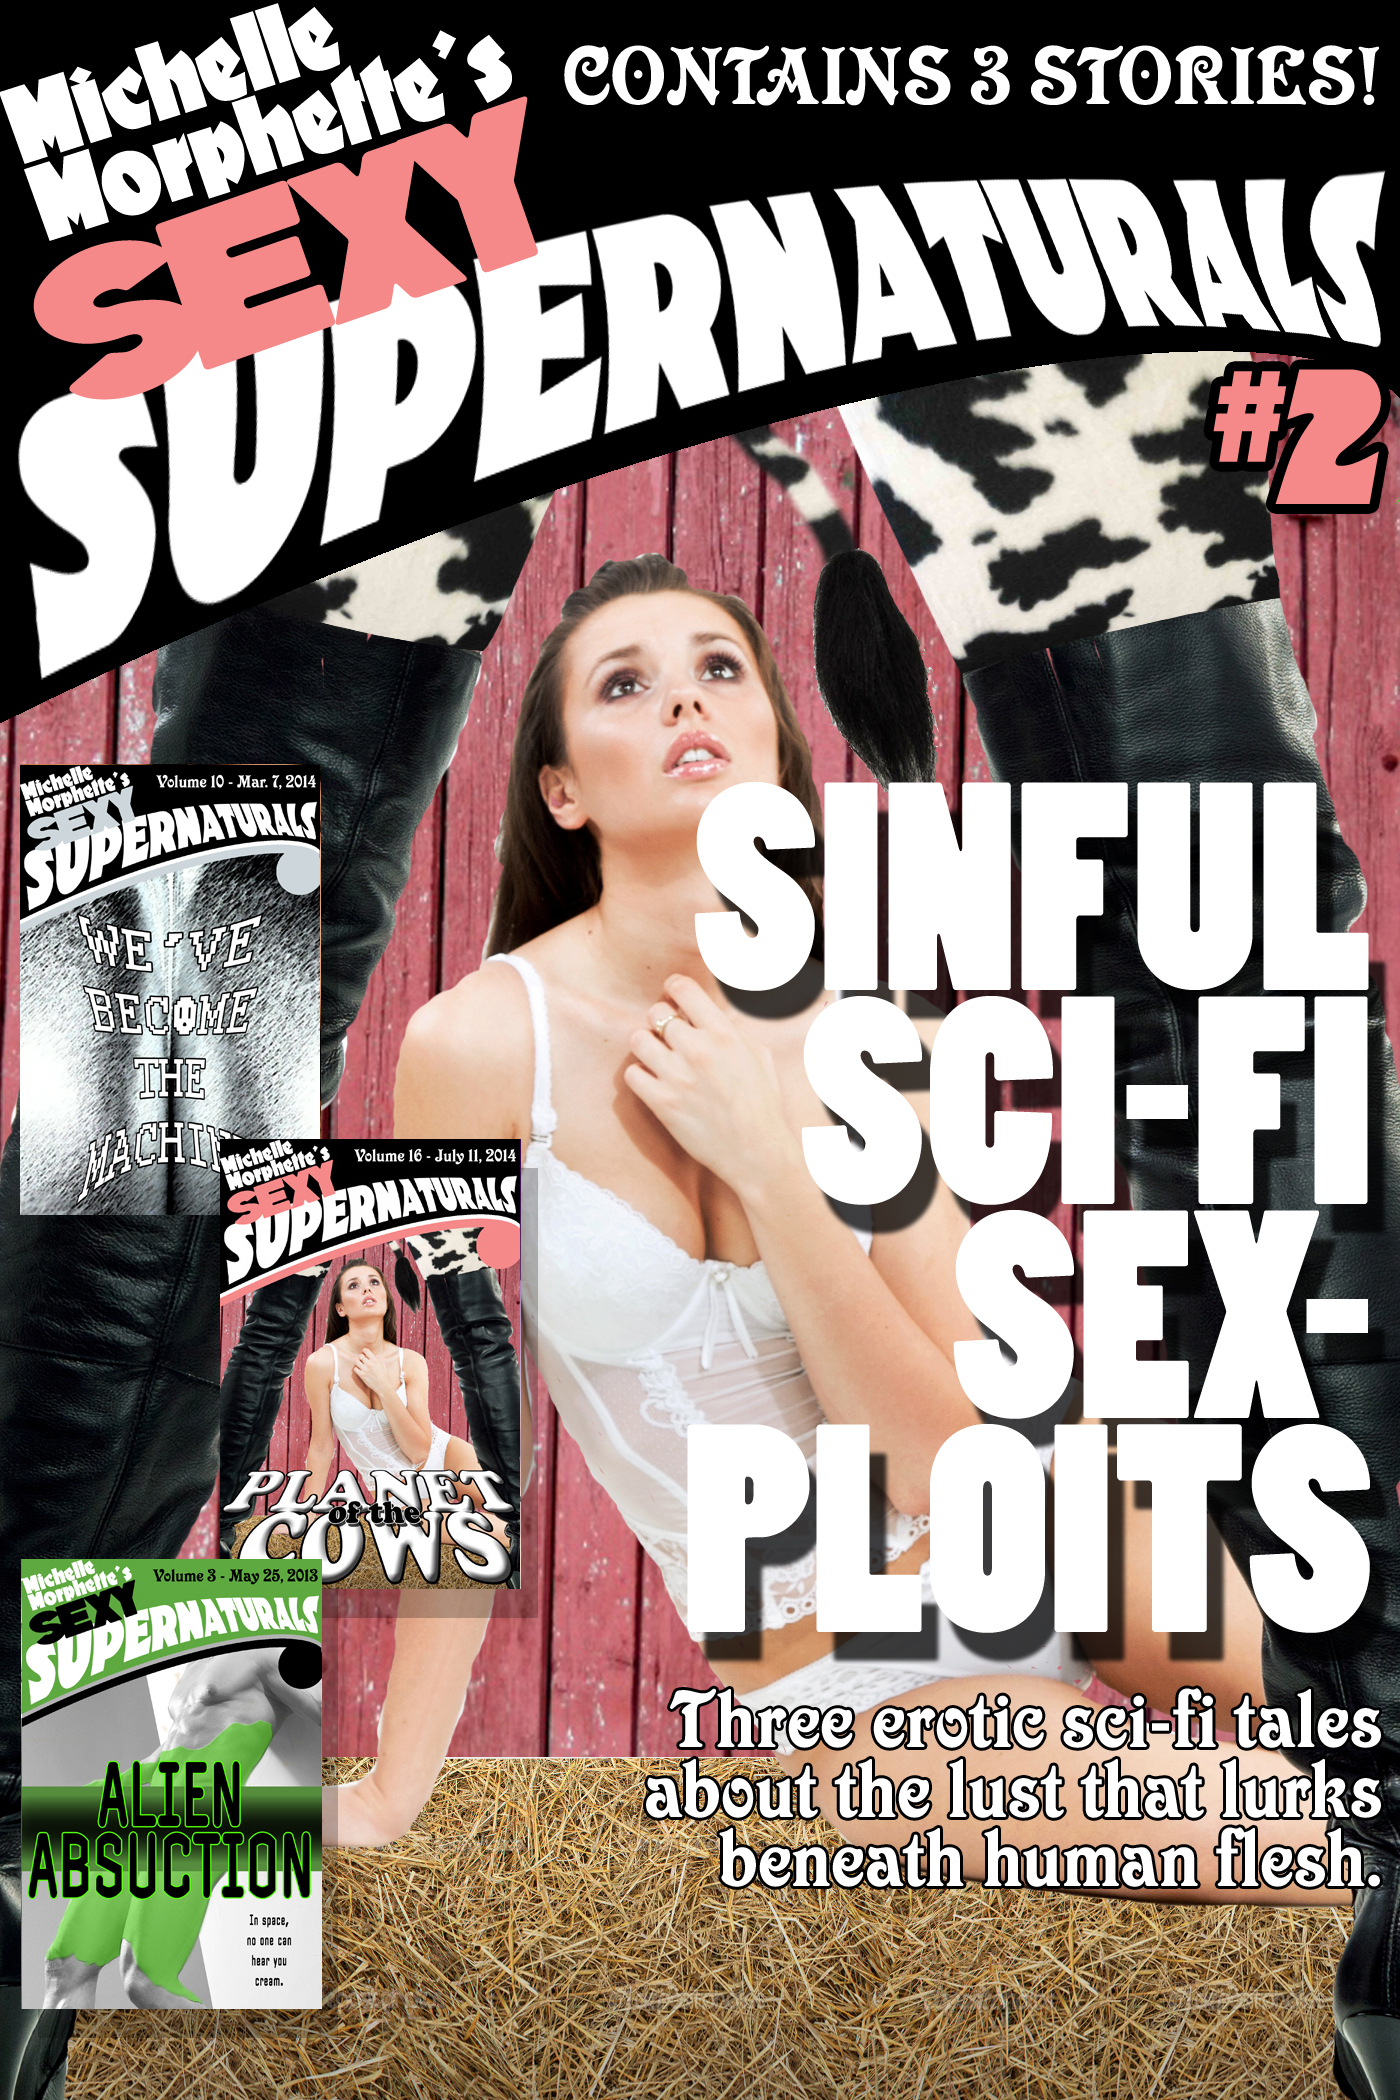 Sinful Sci-Fi Sexploits: Sexy Supernaturals Bundle #2  by  Michelle Morphette